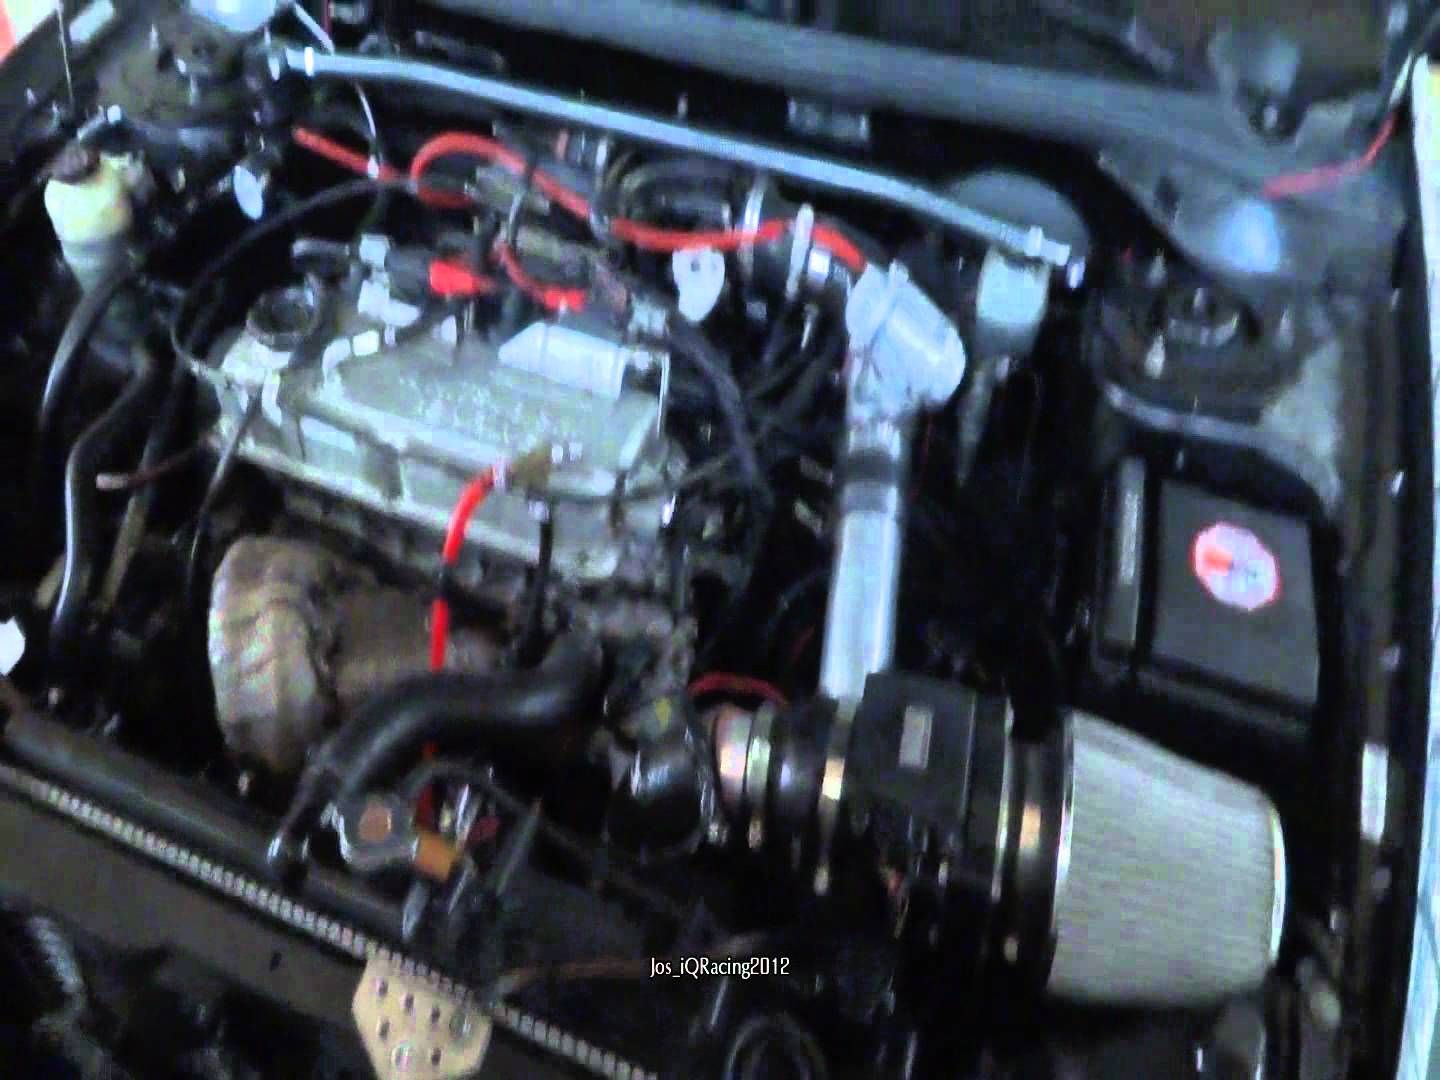 How to replace a egr valve on a 2004 dodge ram youtube - How To Clean Replace Egr Valve Mitsubishi Lancer 2002 Strictlyforeign Biz Mitsubishi Pinterest Mitsubishi Lancer